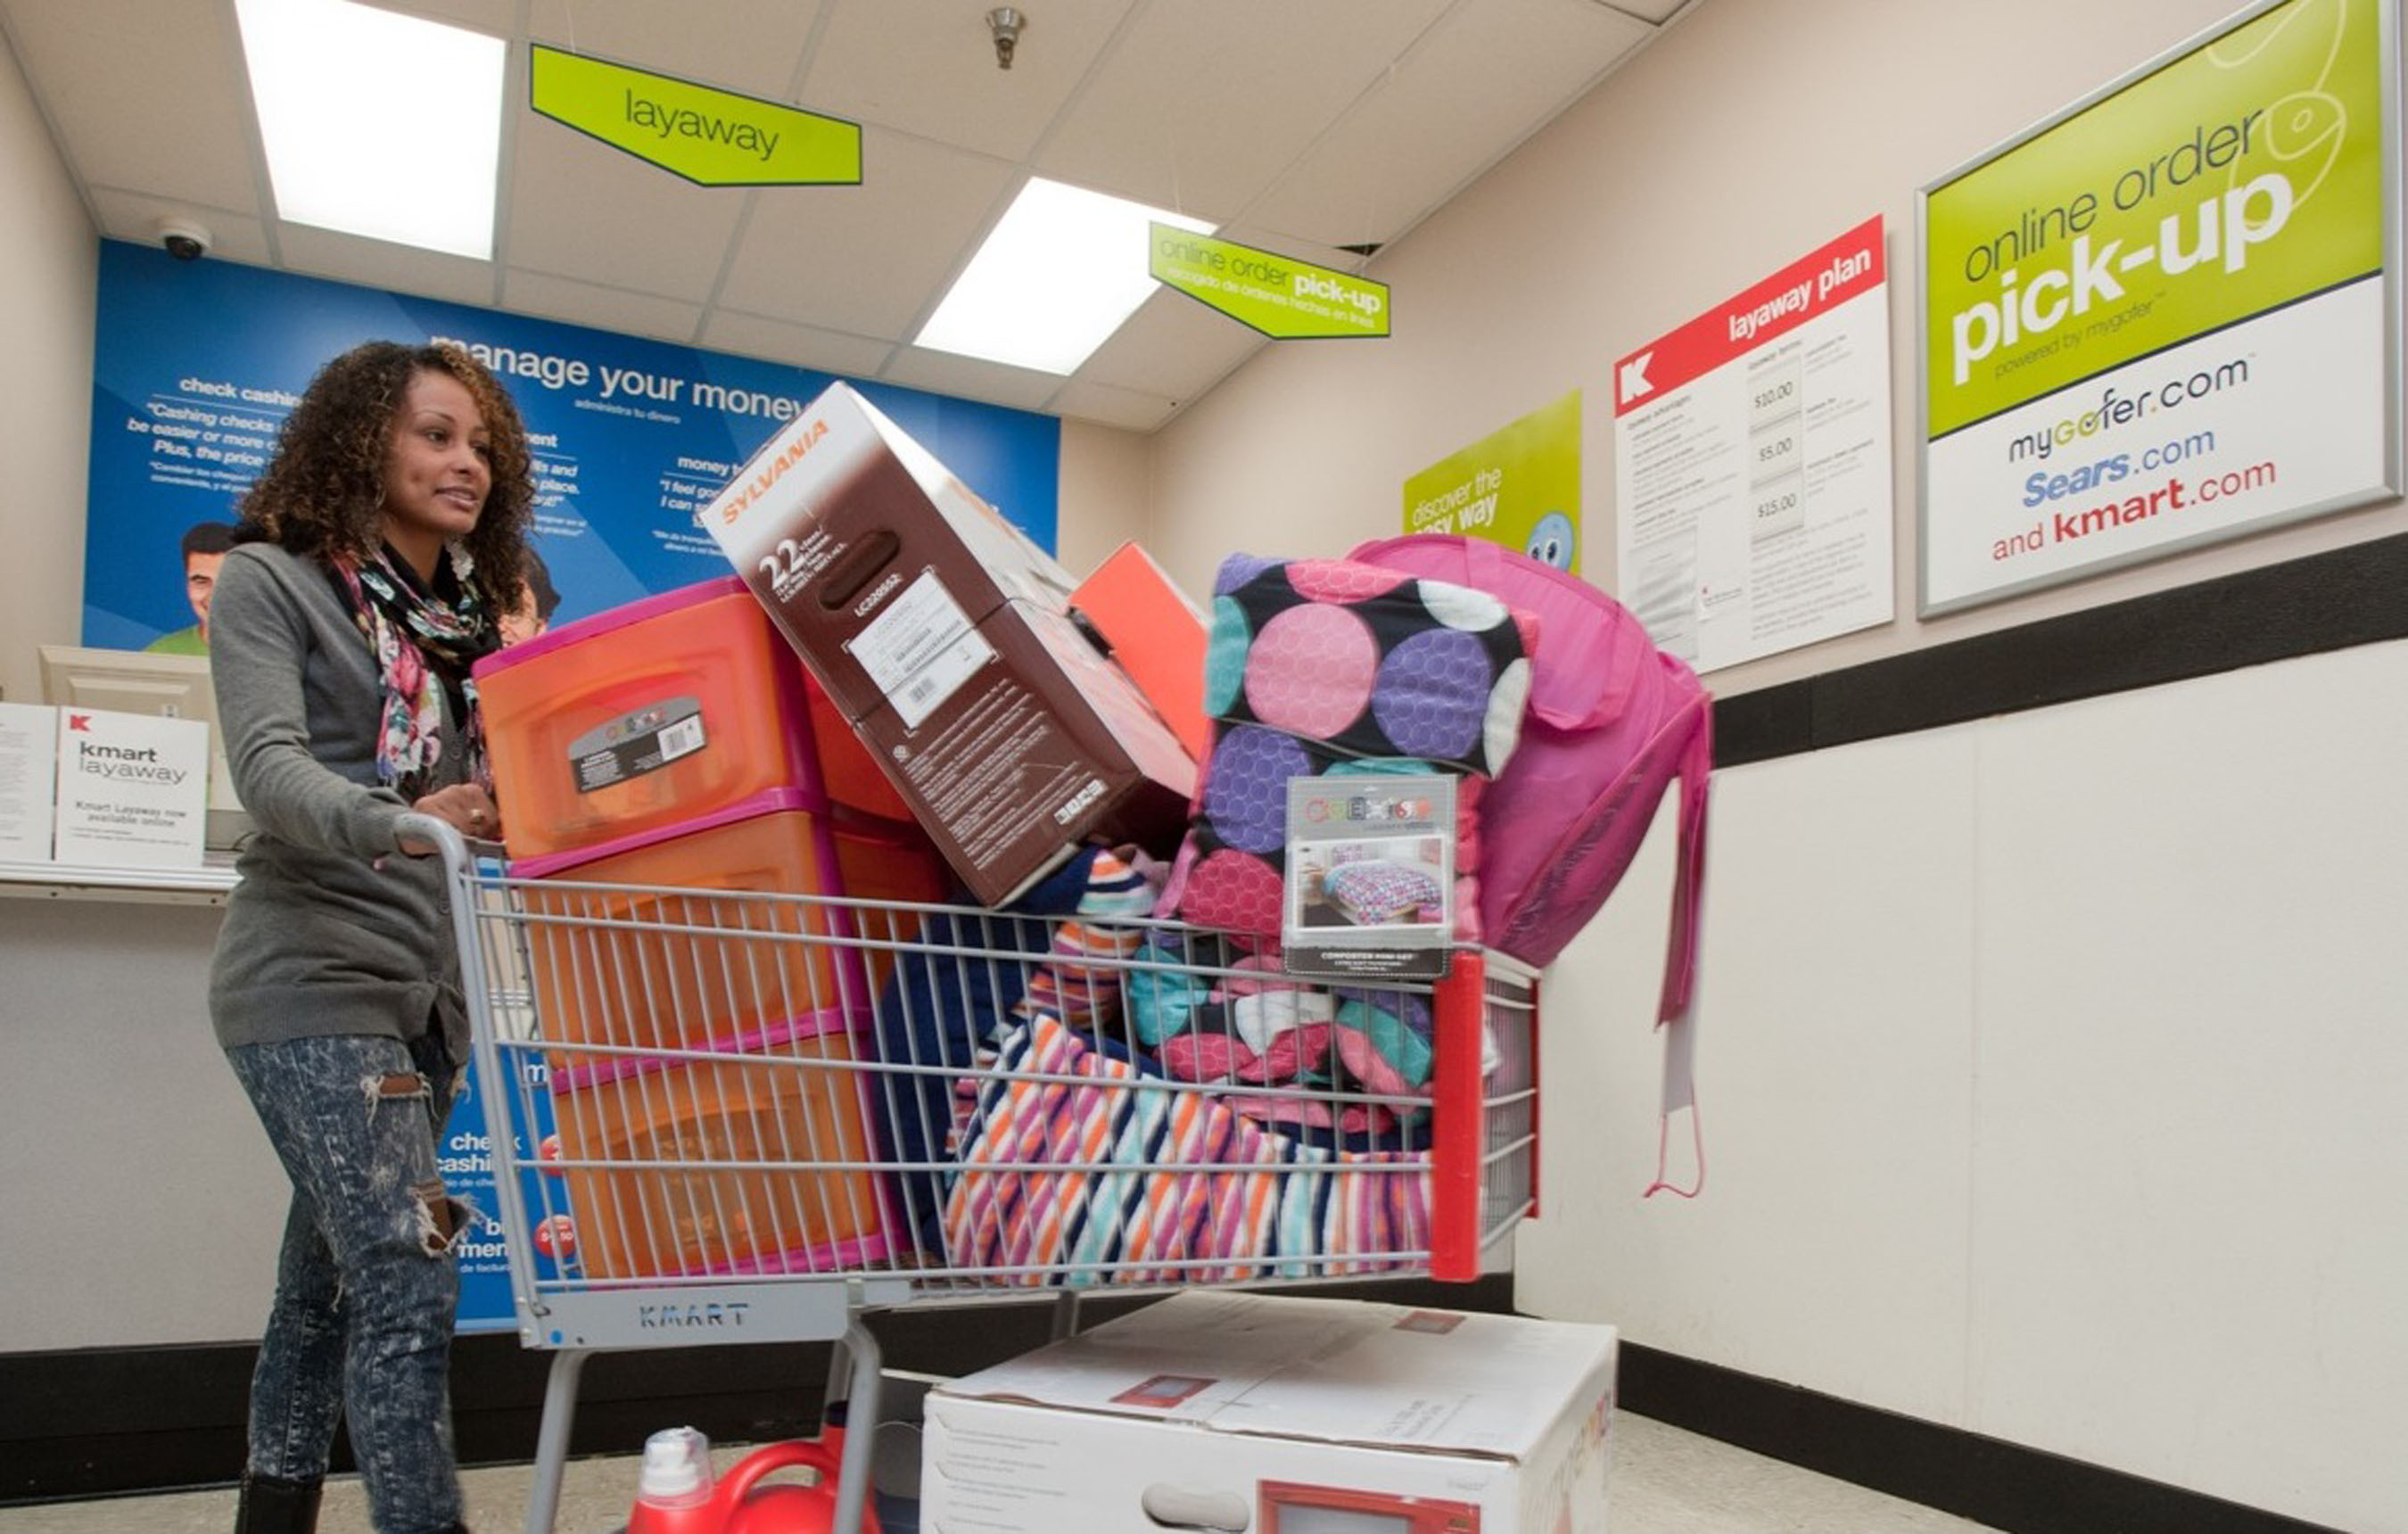 Sears and Kmart Offer Enhanced Online Layaway Options to ... - photo#36